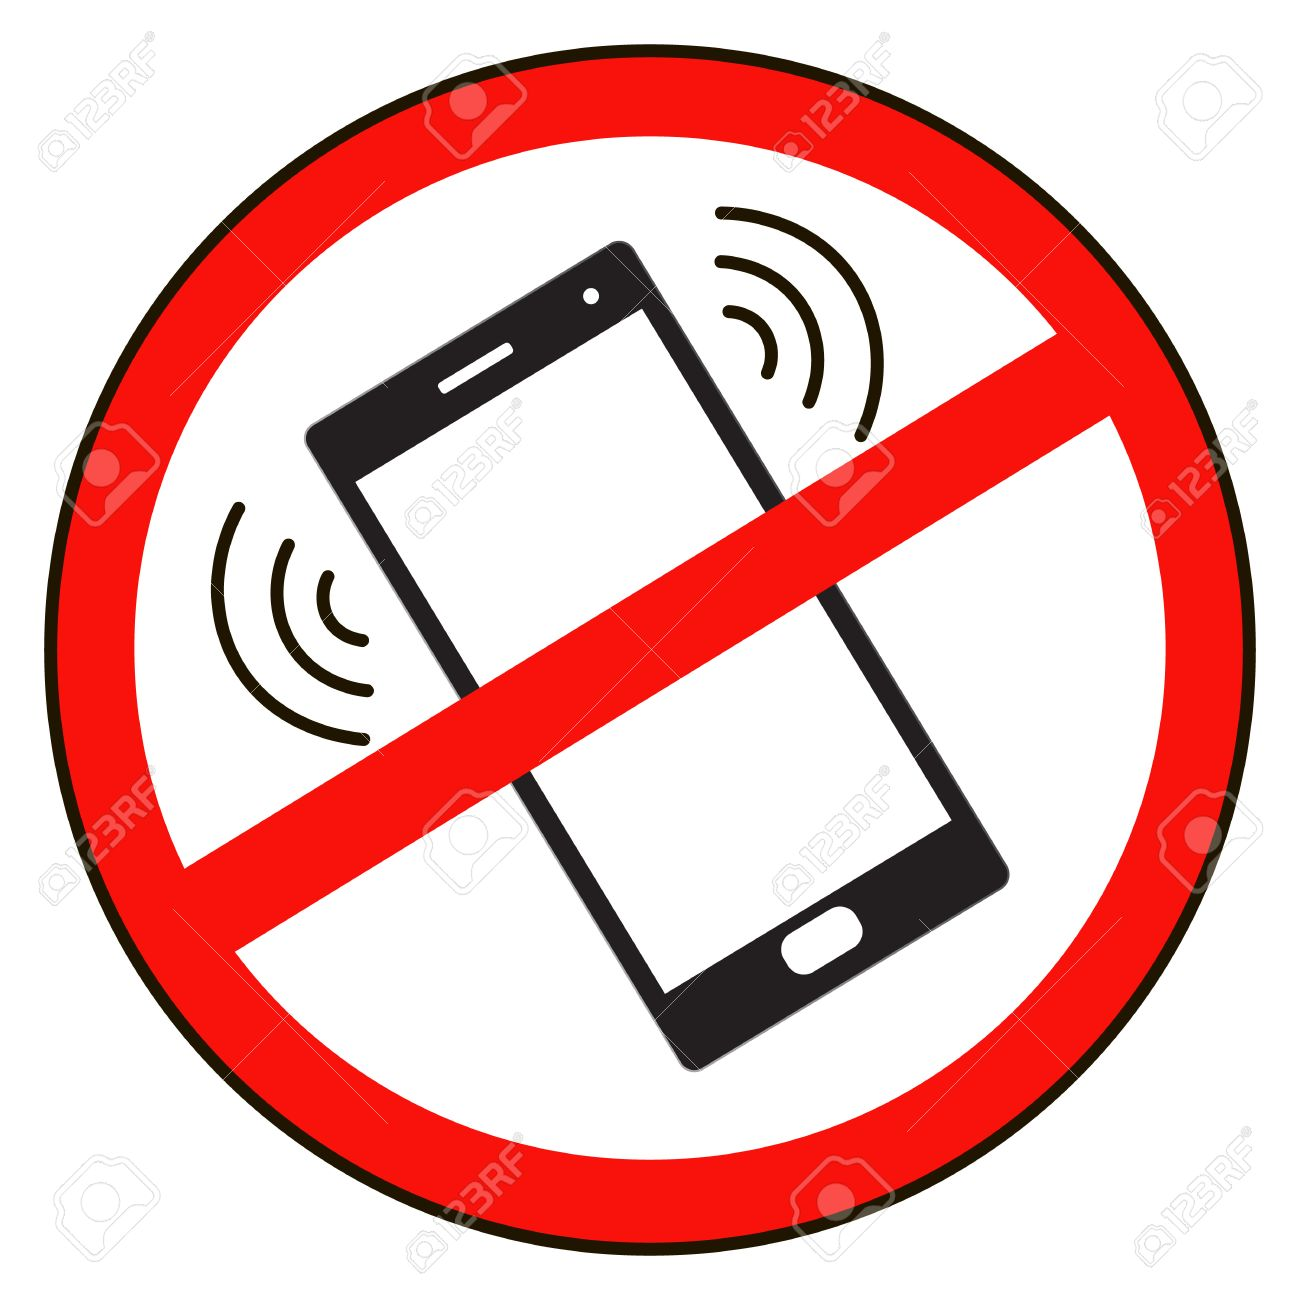 Mobile Phone Prohibited. No Cell Phone Sign Isolated White ...